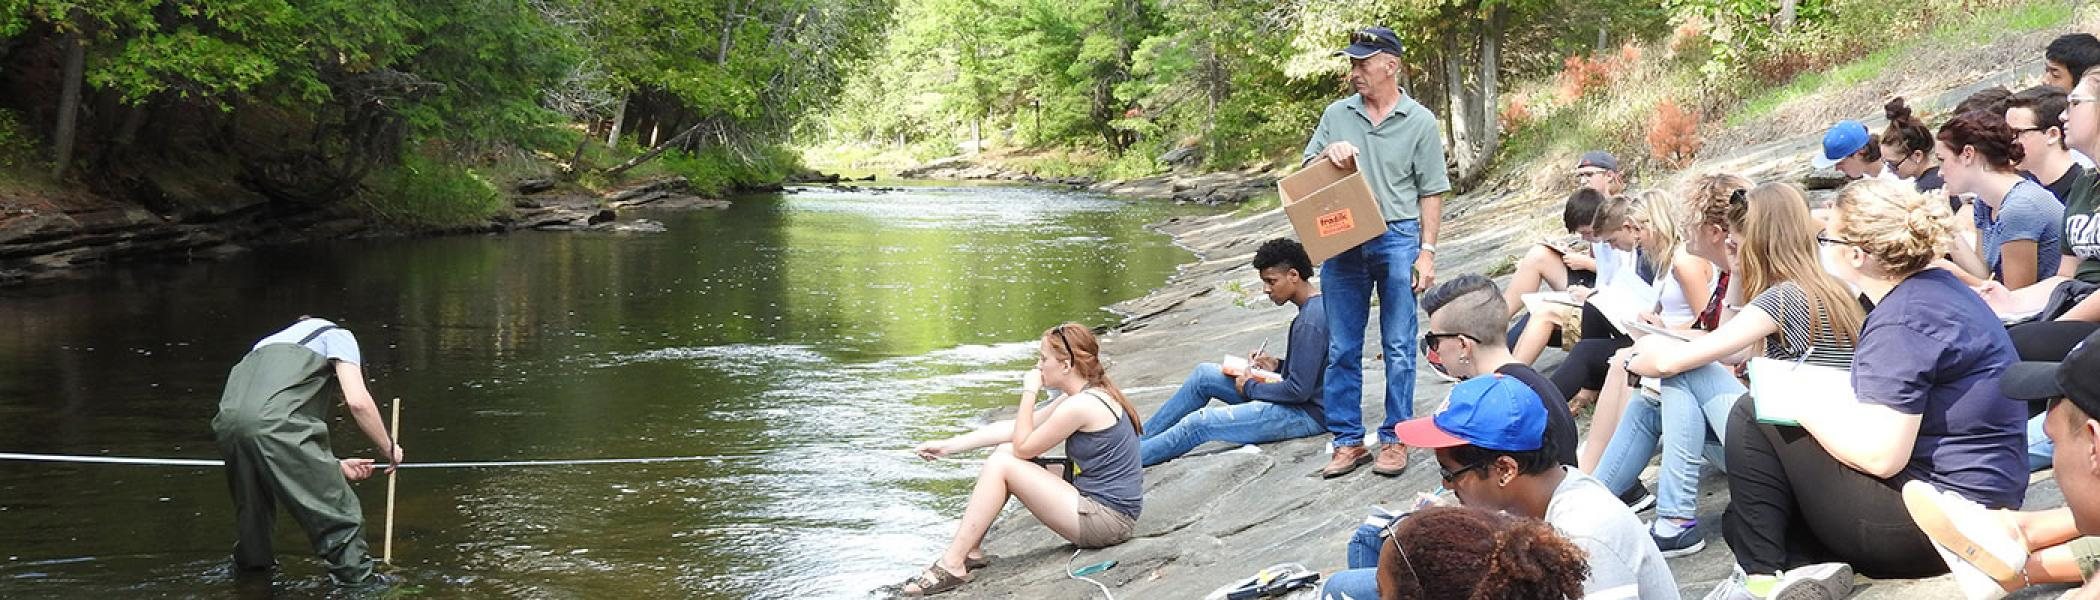 Student working on experiment in river while other students watch